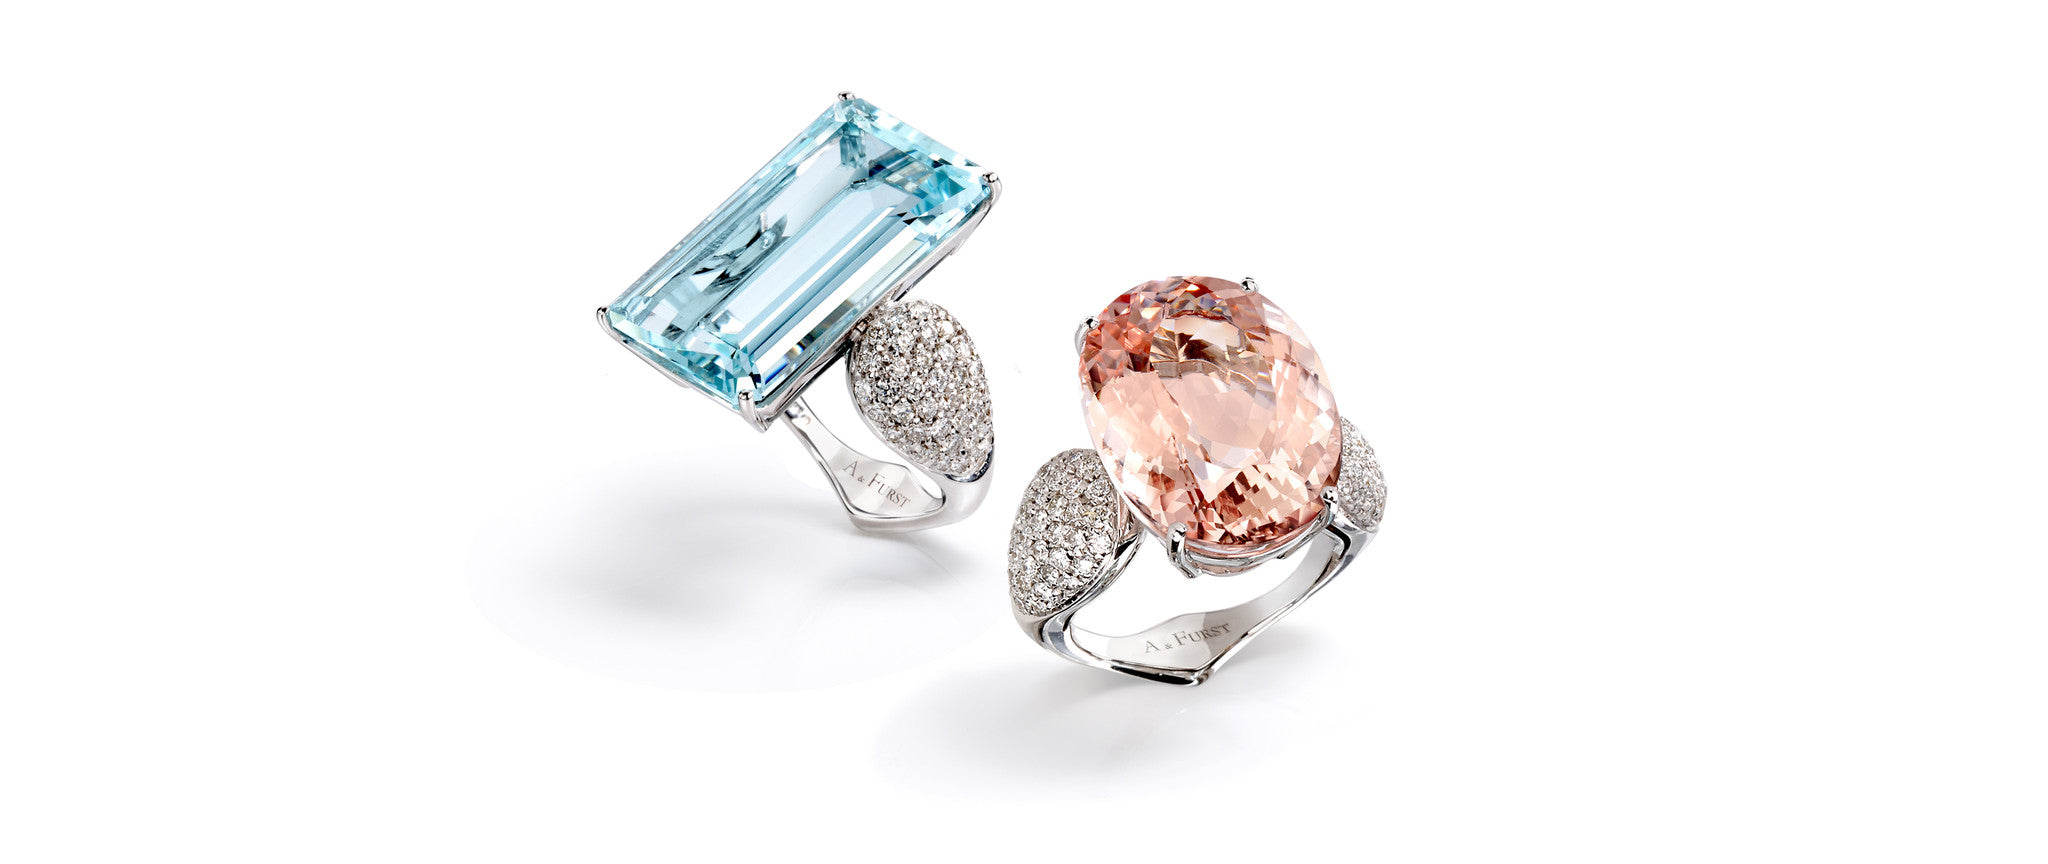 A-FURST-FLEUR-DE-LYS-COCKTAIL-RINGS-AQUAMARINE-MORGANITE-DIAMONDS-WHITE-GOLD